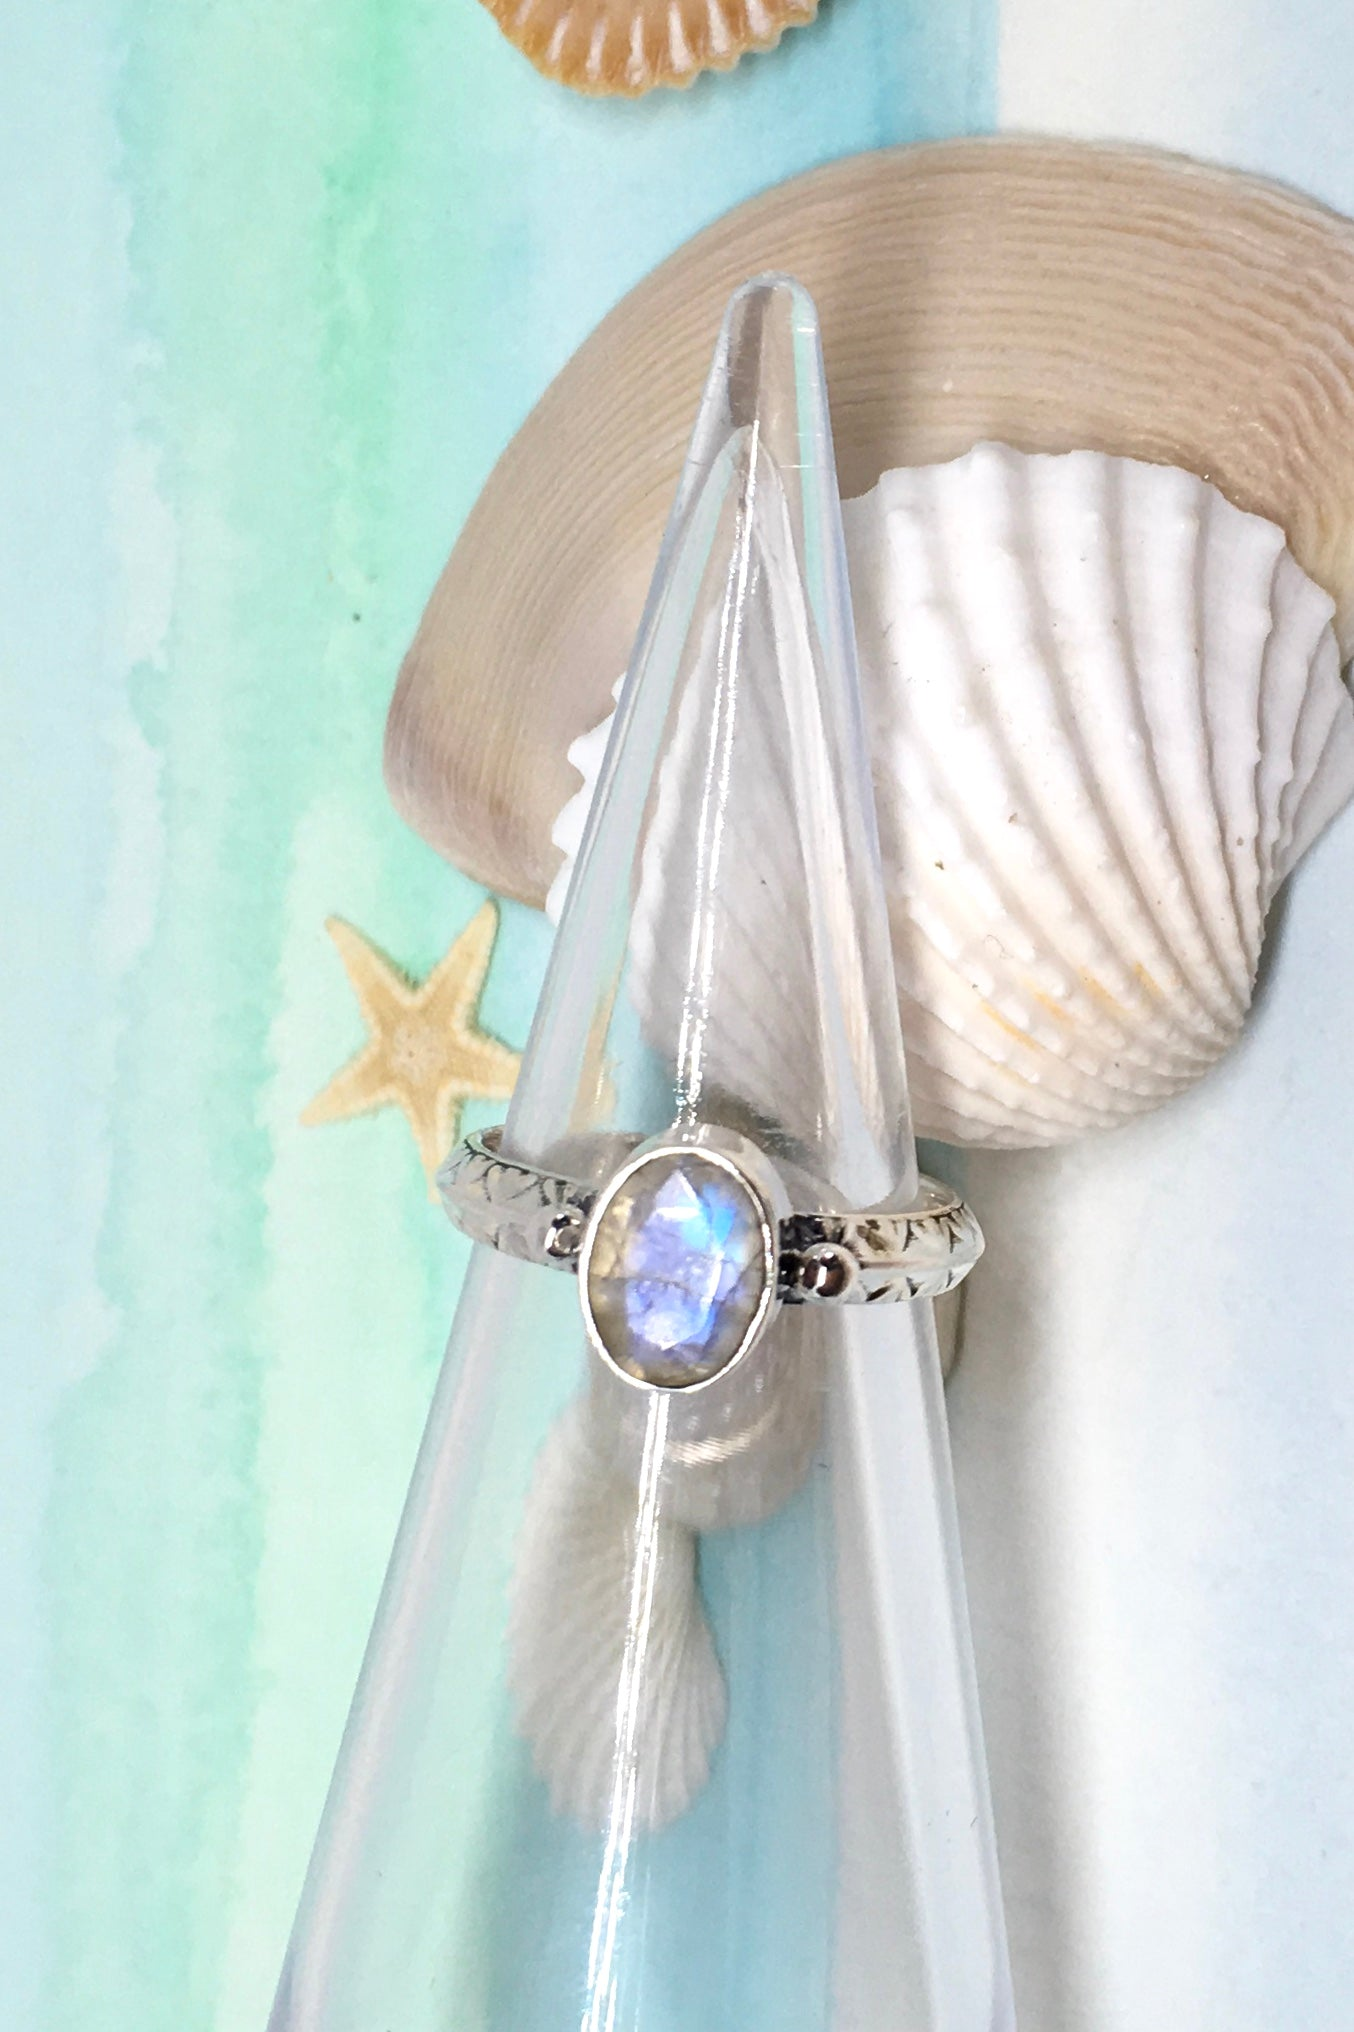 Oracle Ring Roman in 925 Silver with Labradorite Gemstone